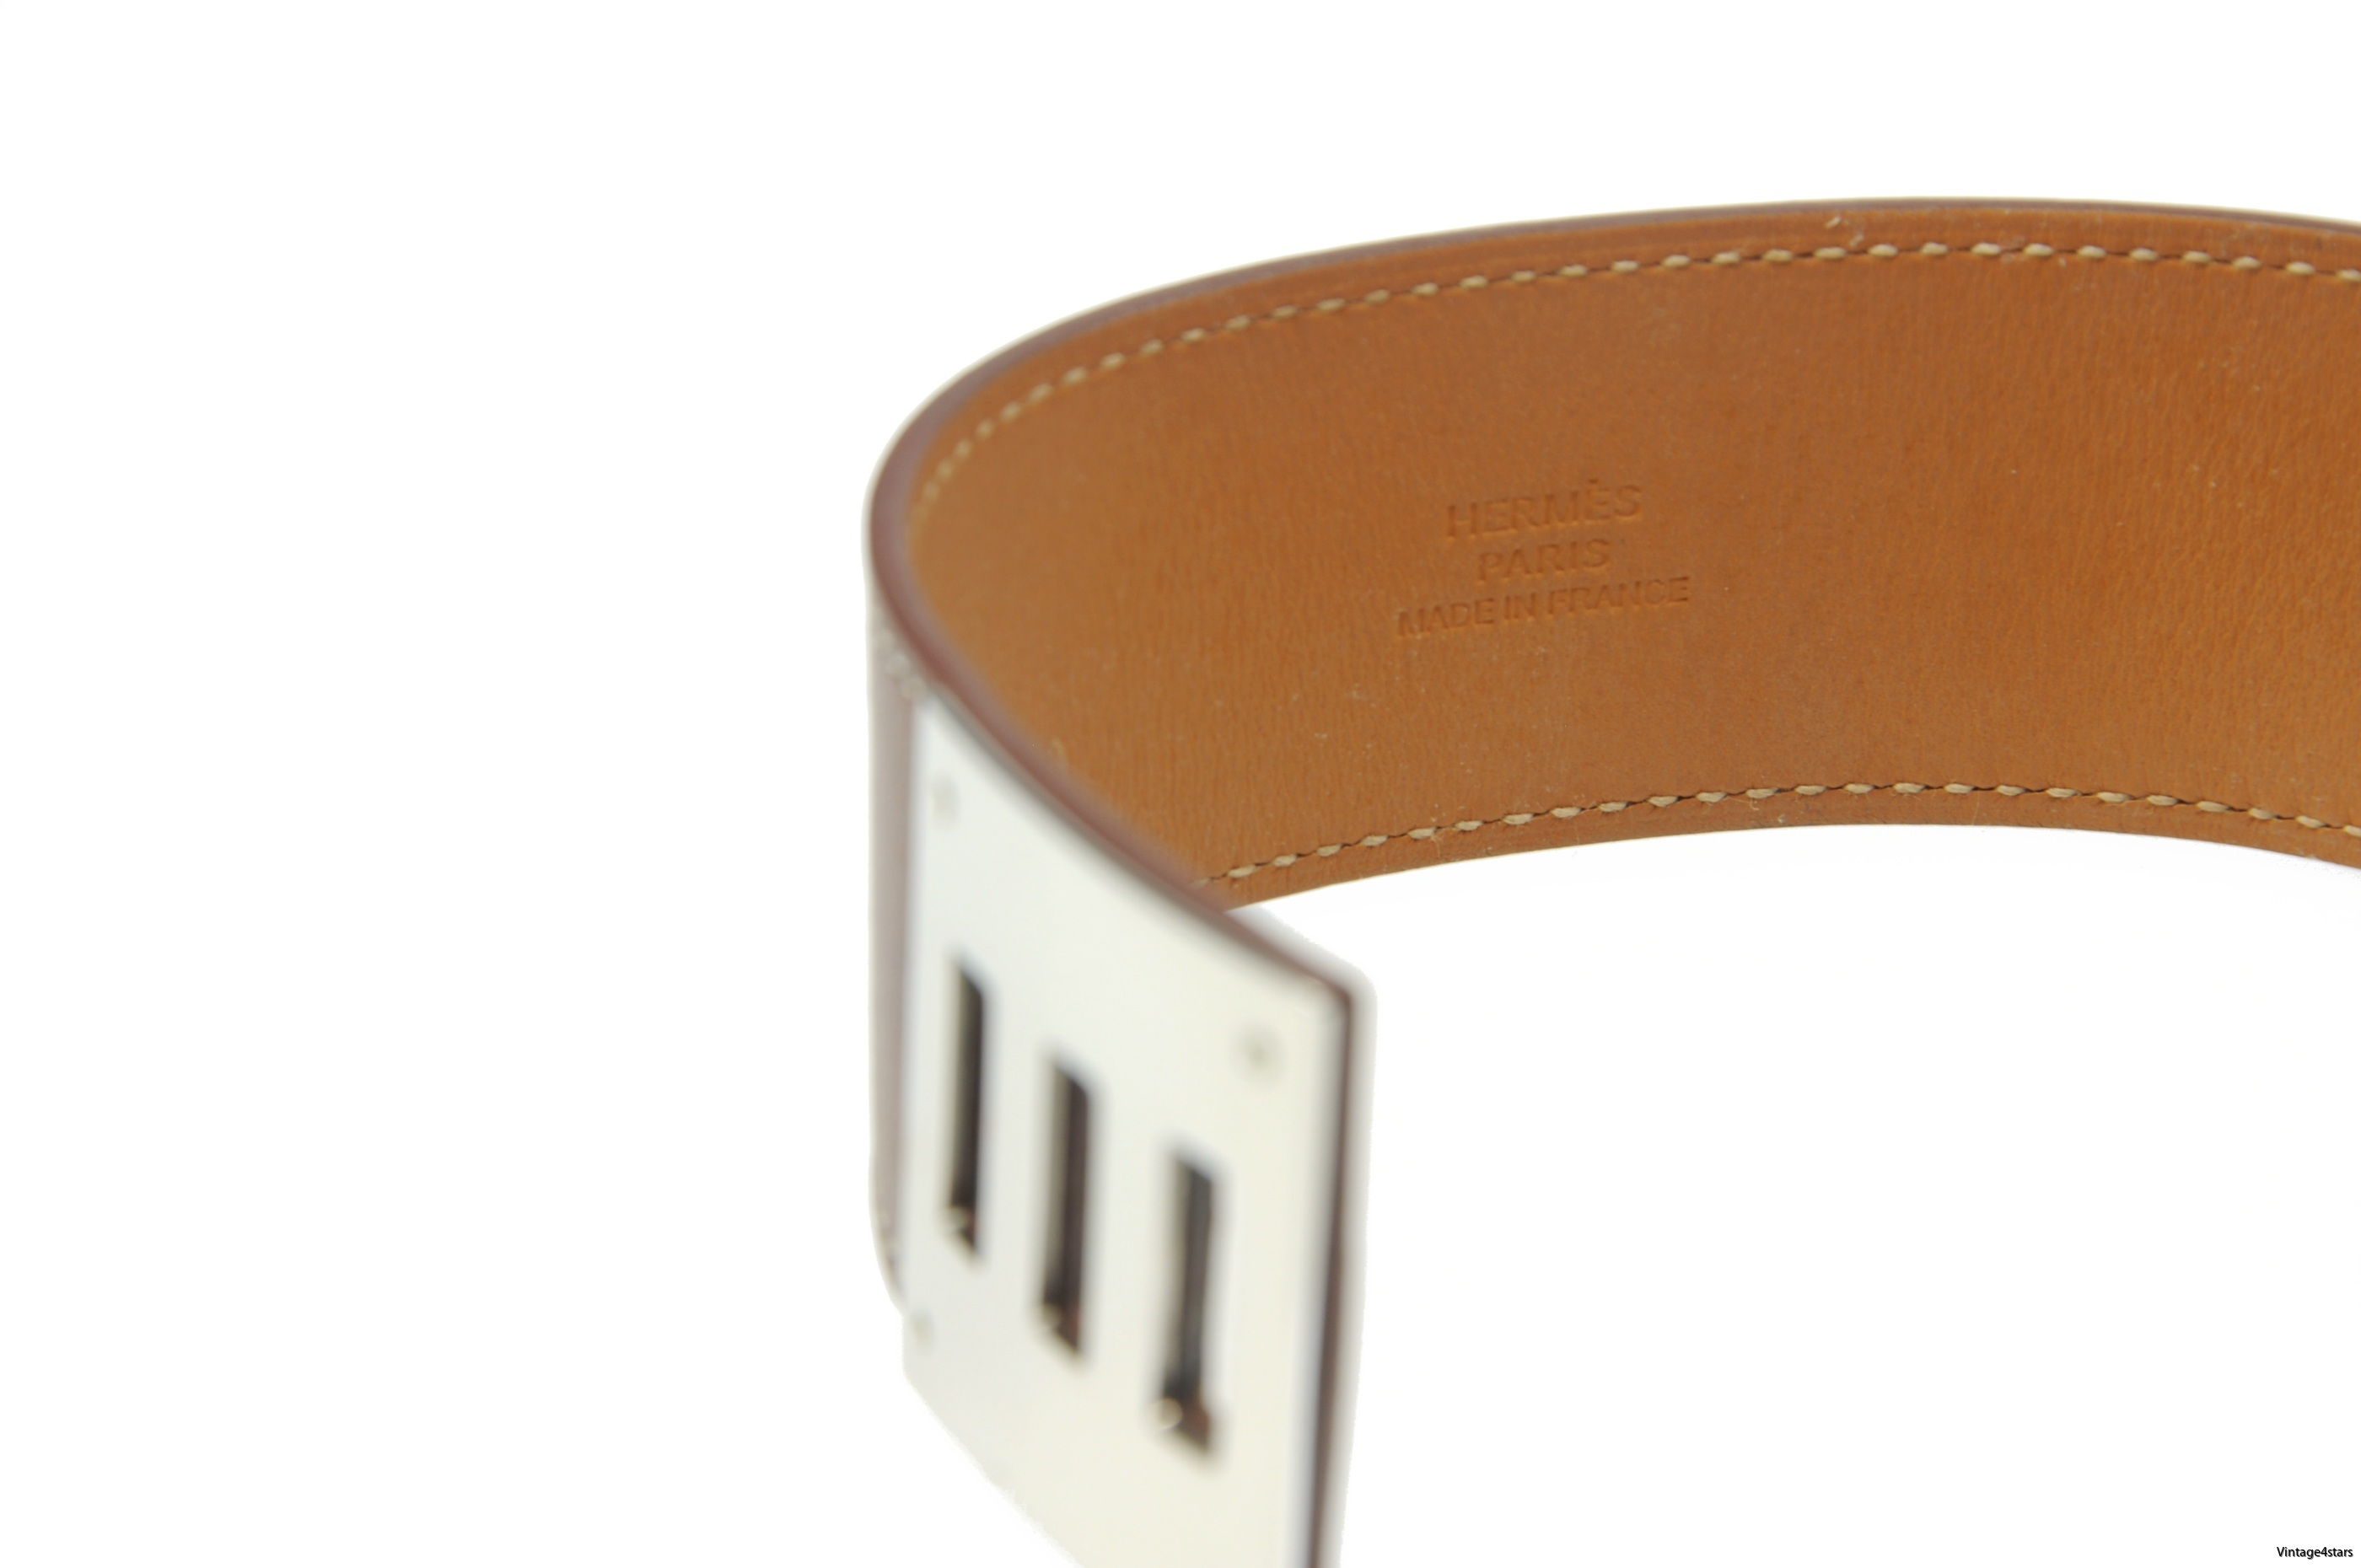 HERMES BRACELET KELLY DOG CUIR VEAU BARENIA NATUREL EN EXCELLENT ETAT 2